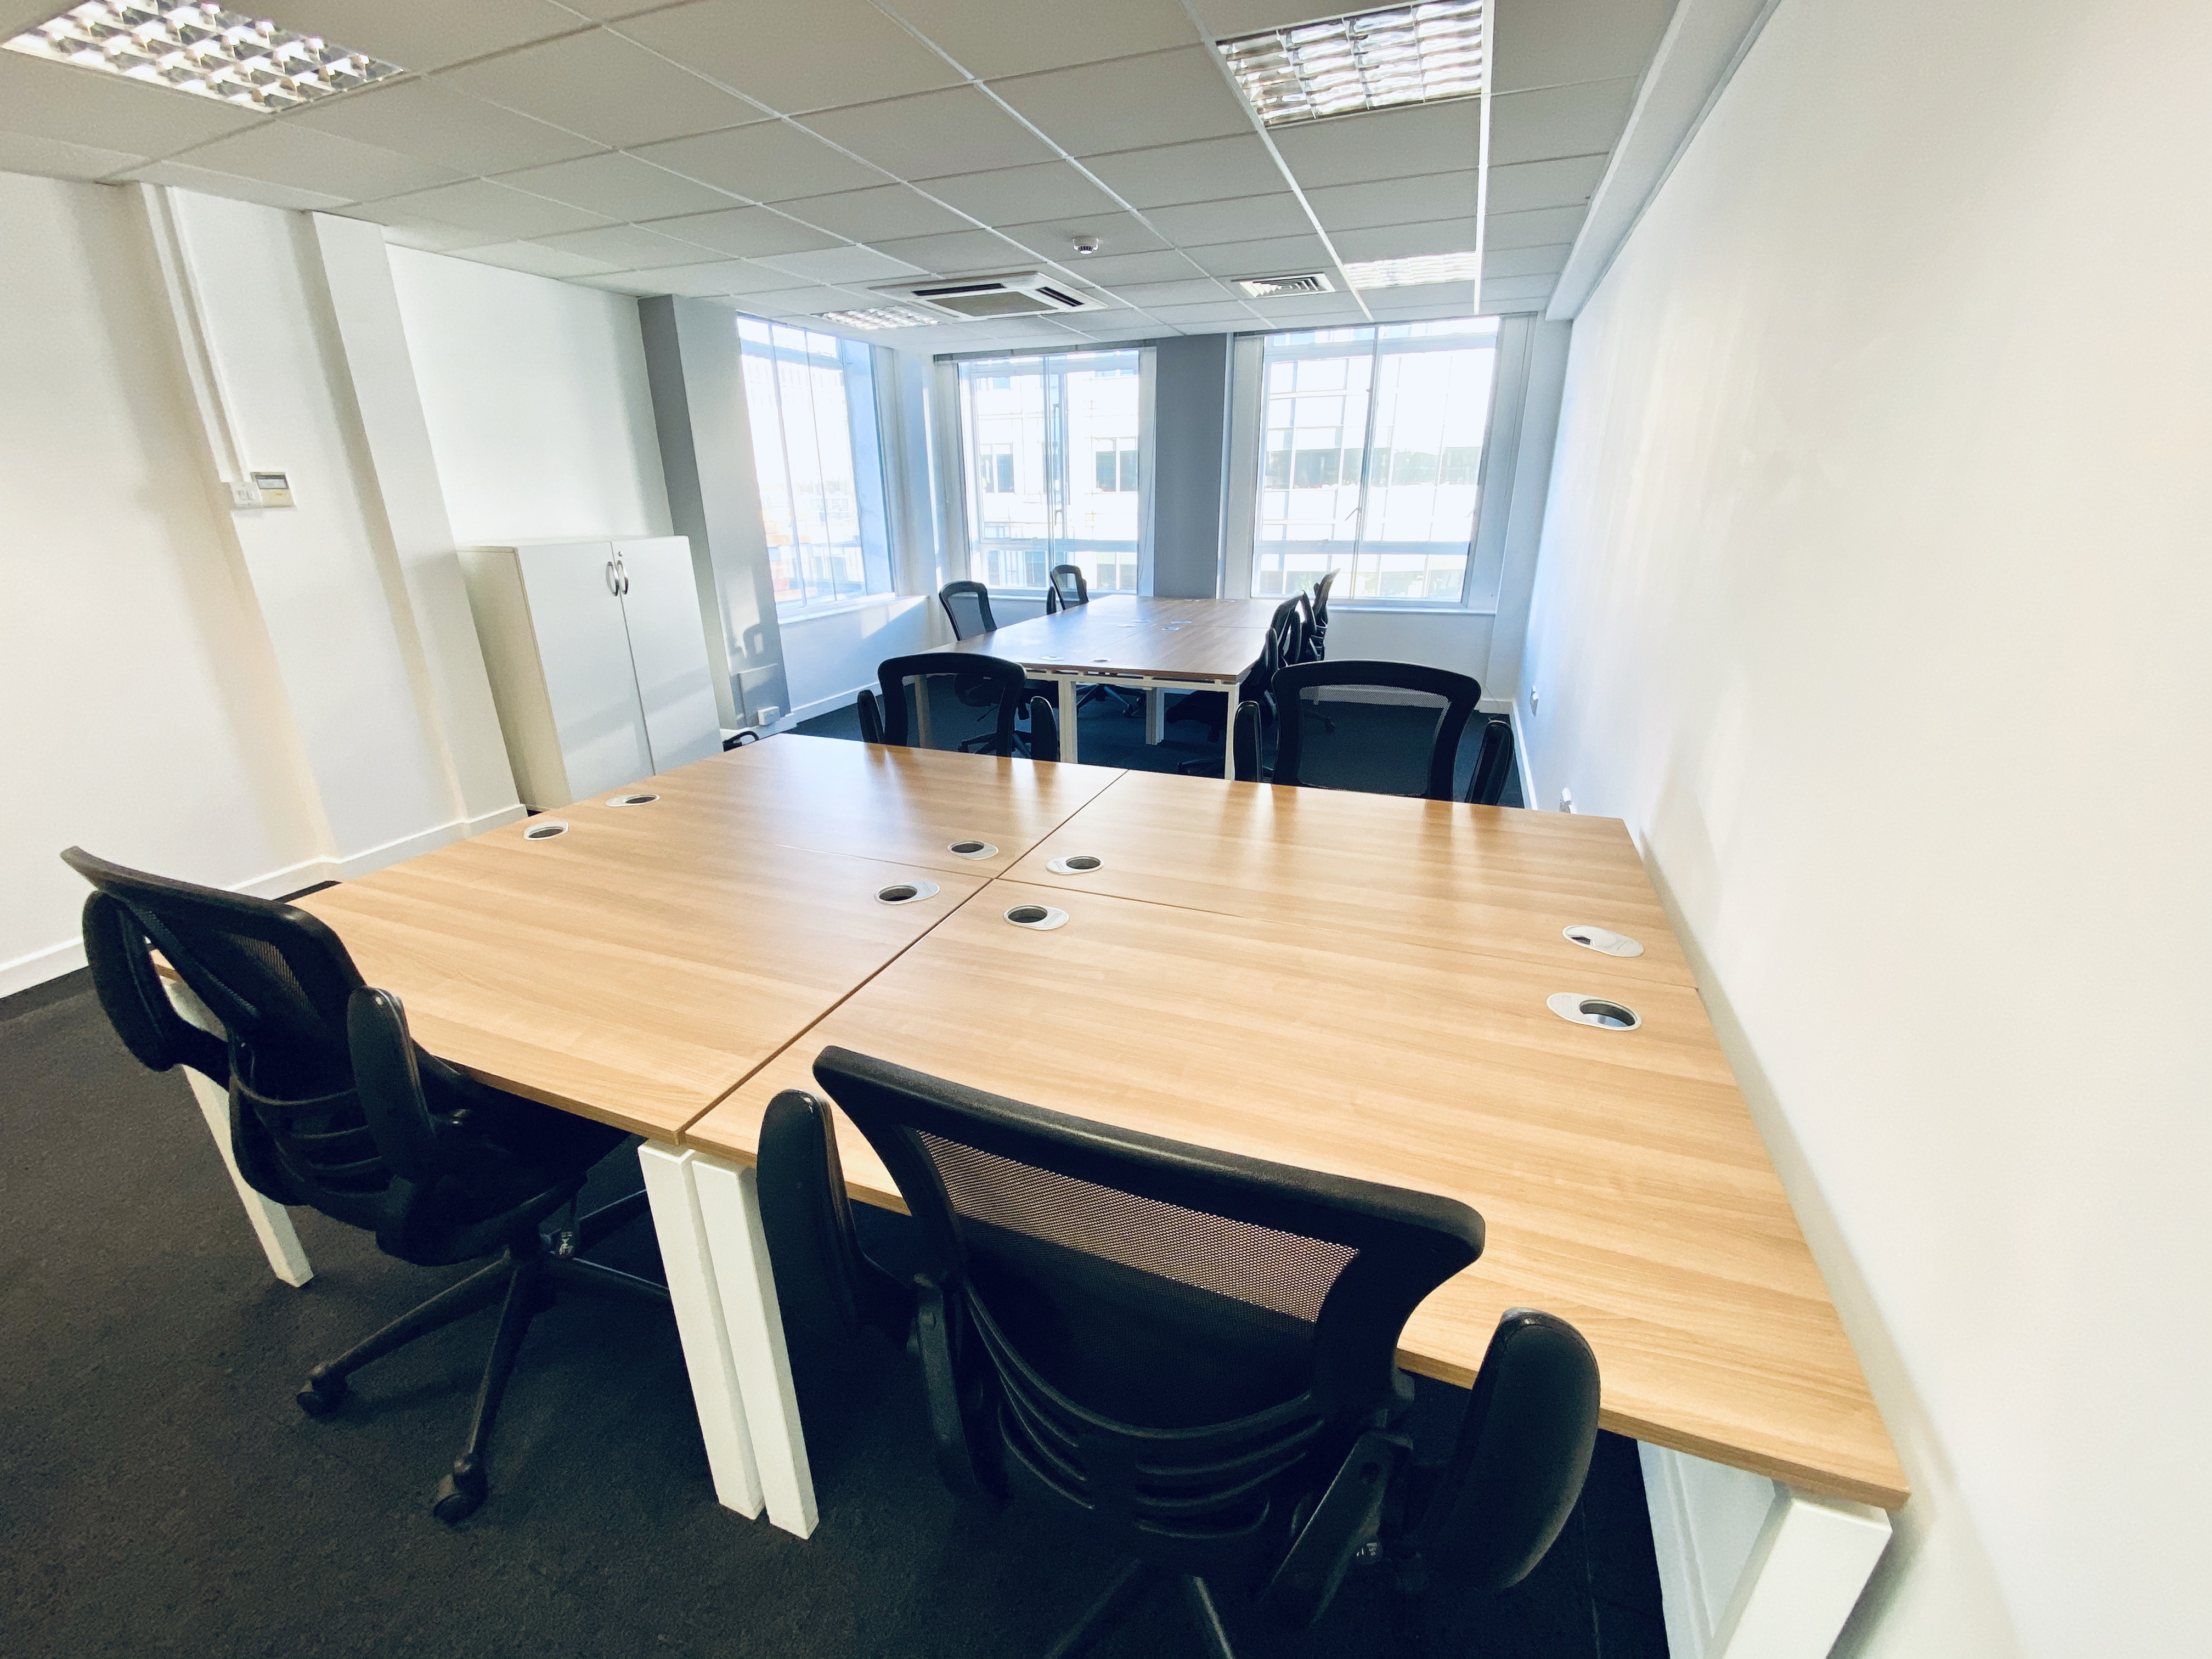 8-person office (6.02)